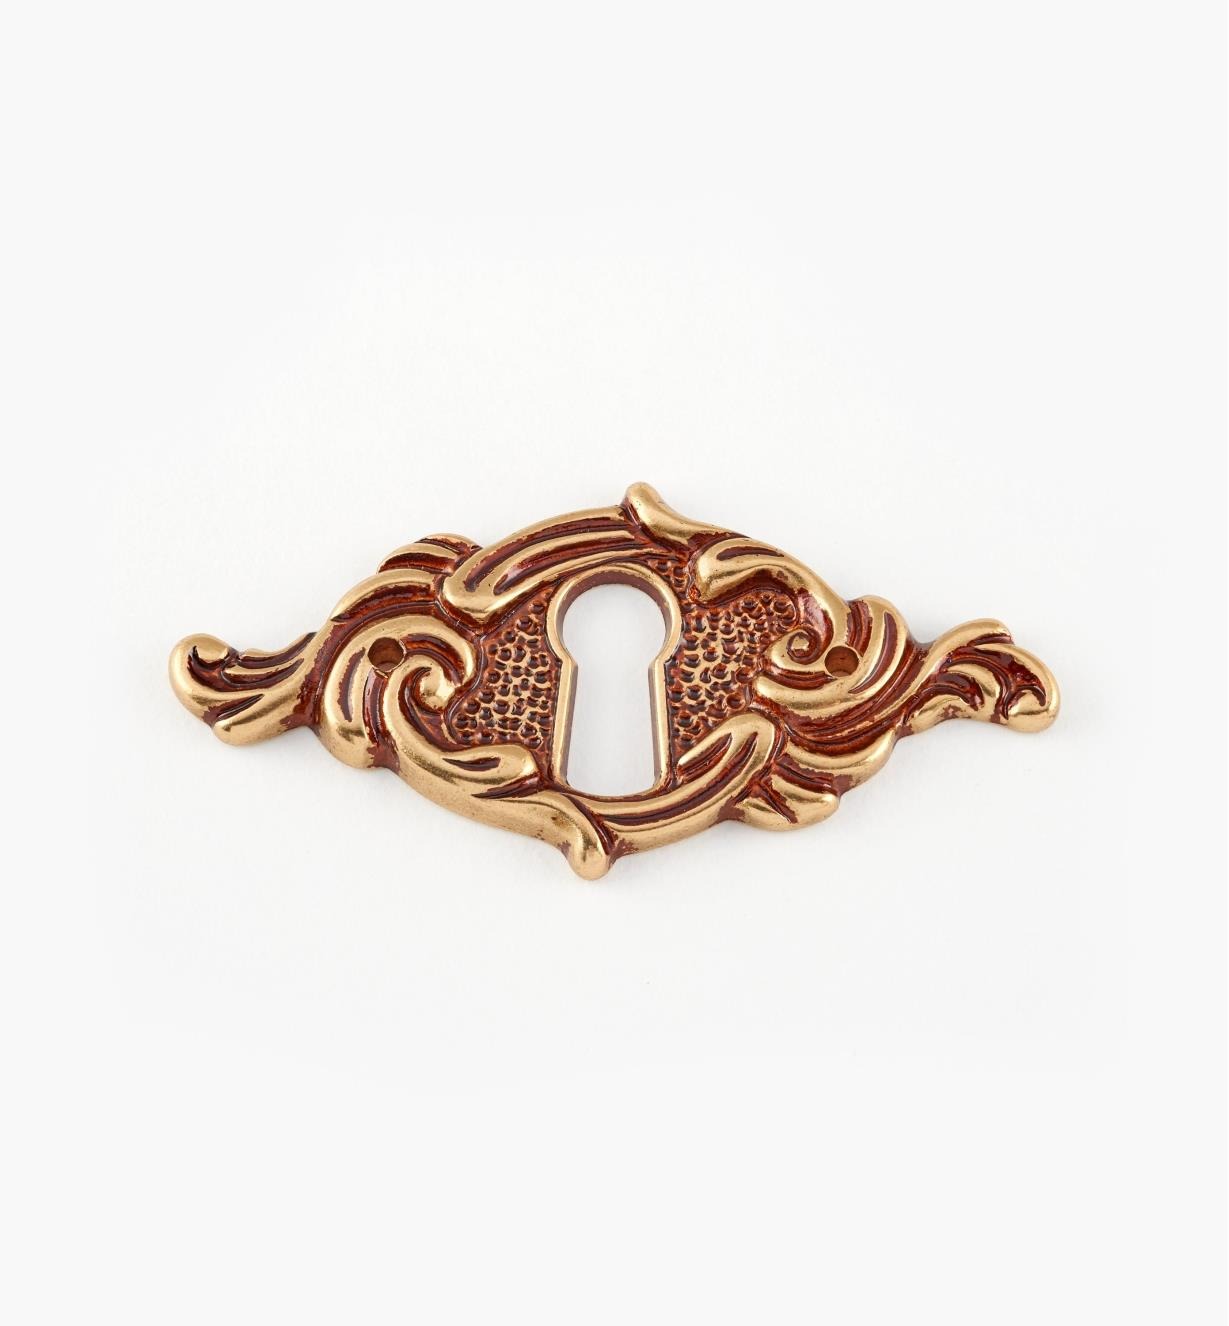 01A5360 - 62mm Louis XV Horizontal Escutcheon